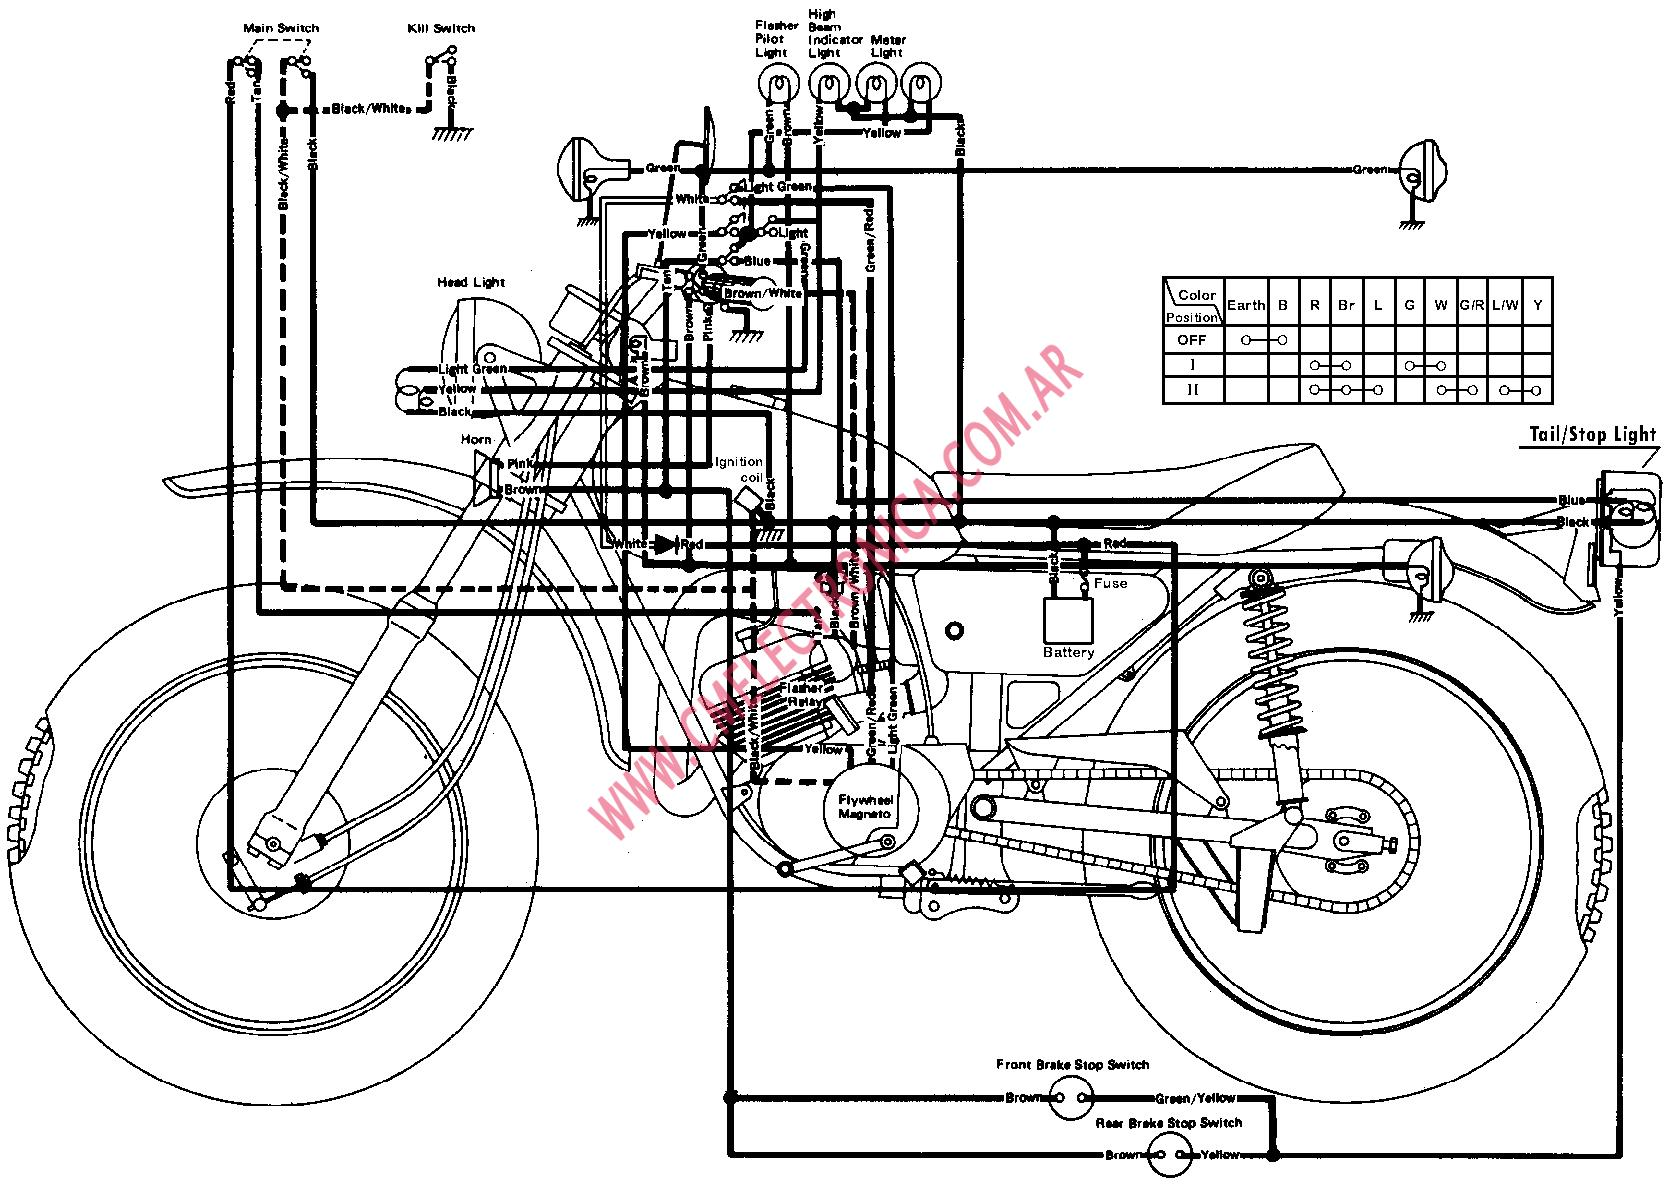 Wiring Diagram For Yamaha Dt 175a